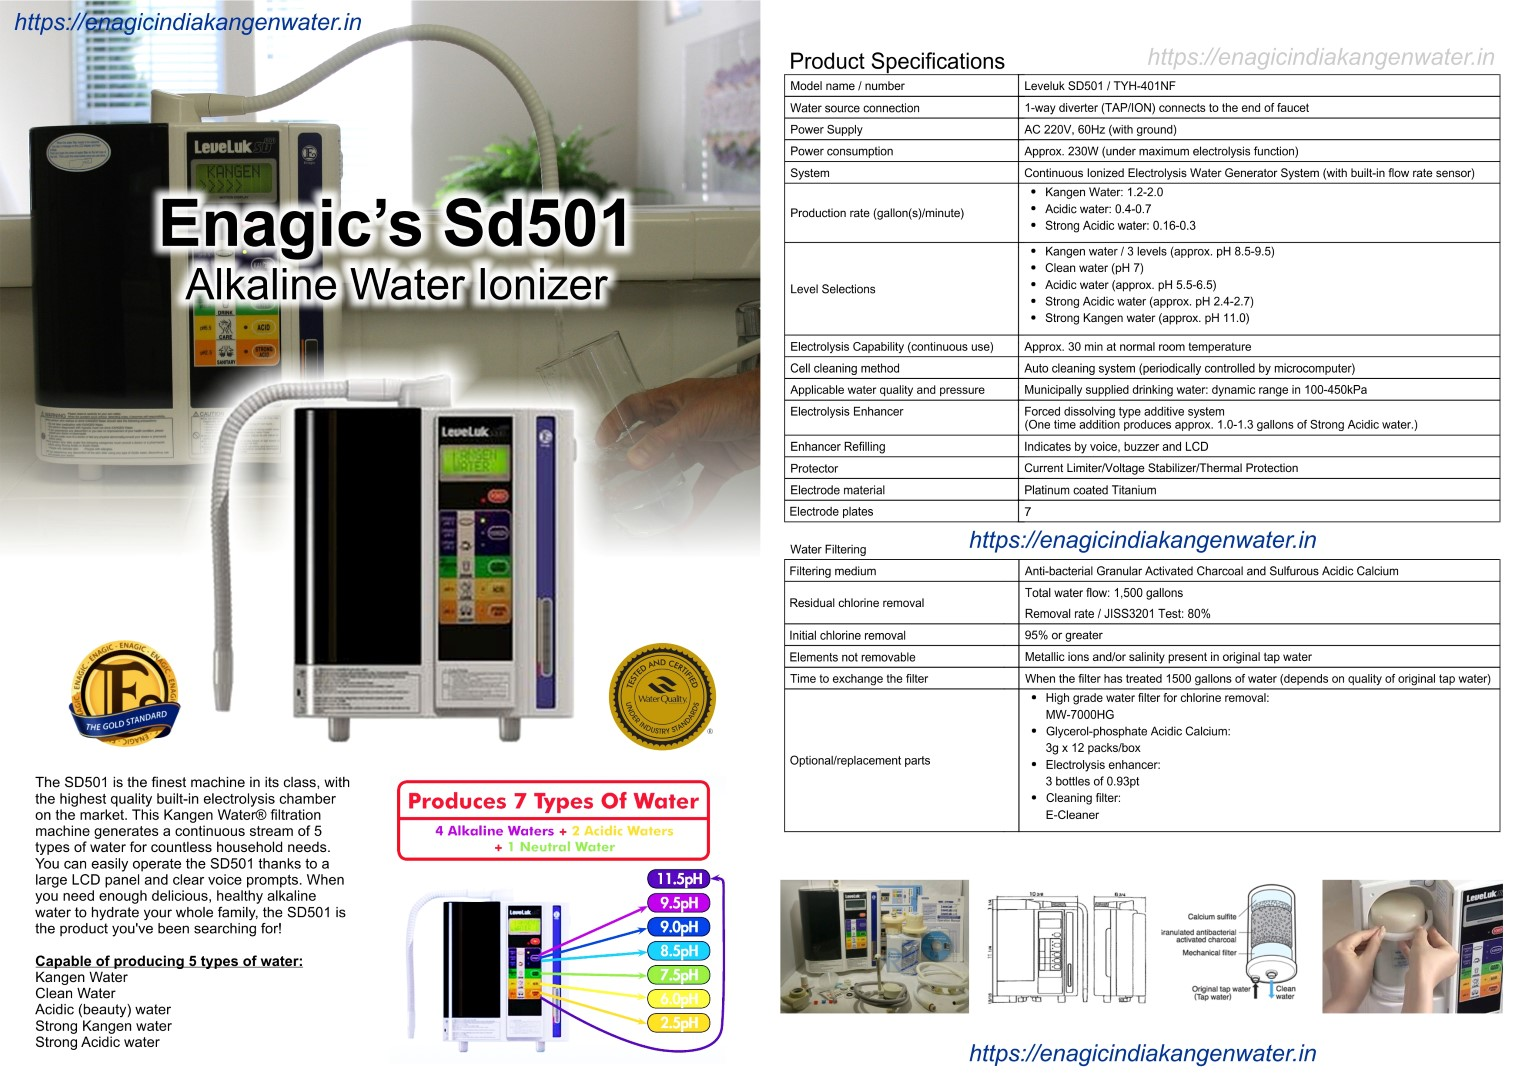 Enagic SD501 Water Ionizer